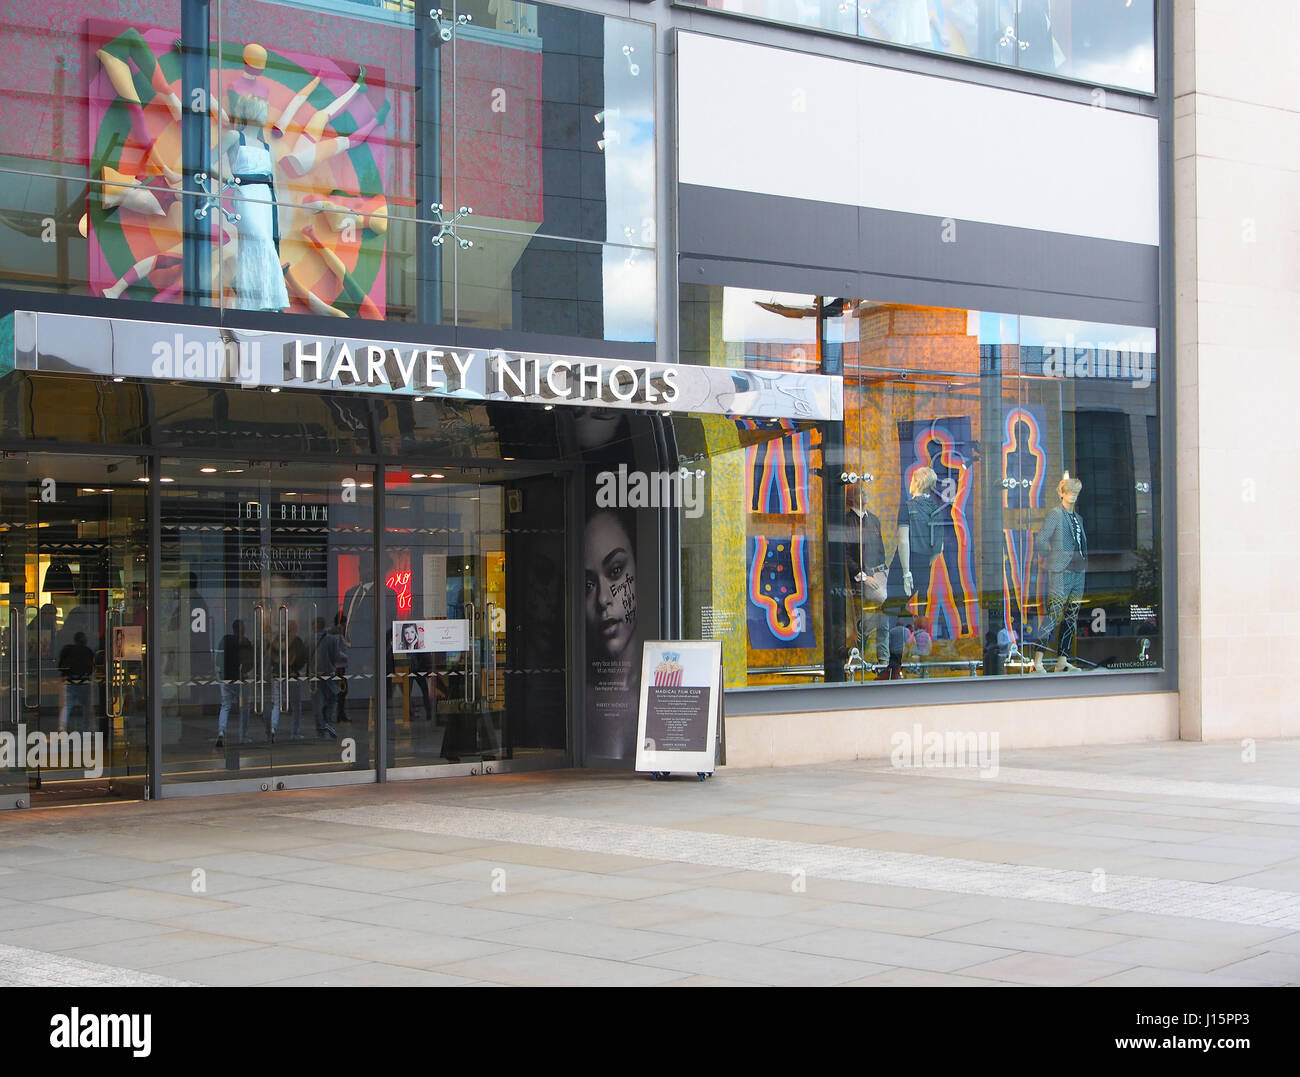 Exterior of the Harvey Nichols shop store in the city centre center of Manchester, England, UK, showing the colourful - Stock Image